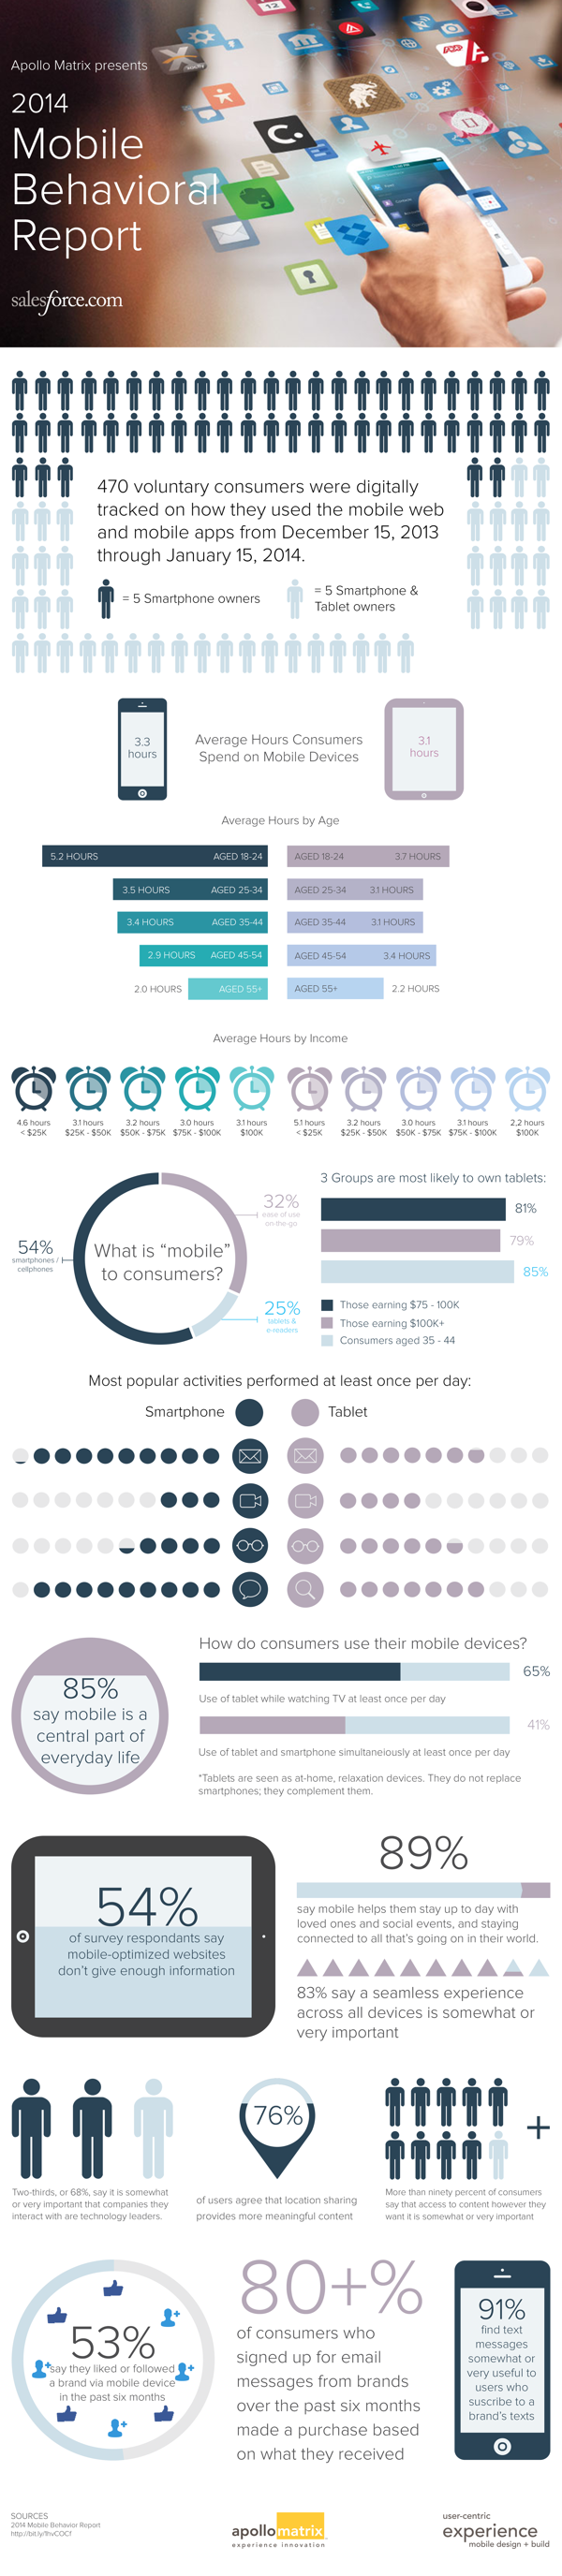 Mobile Behavioral Report - Infographic